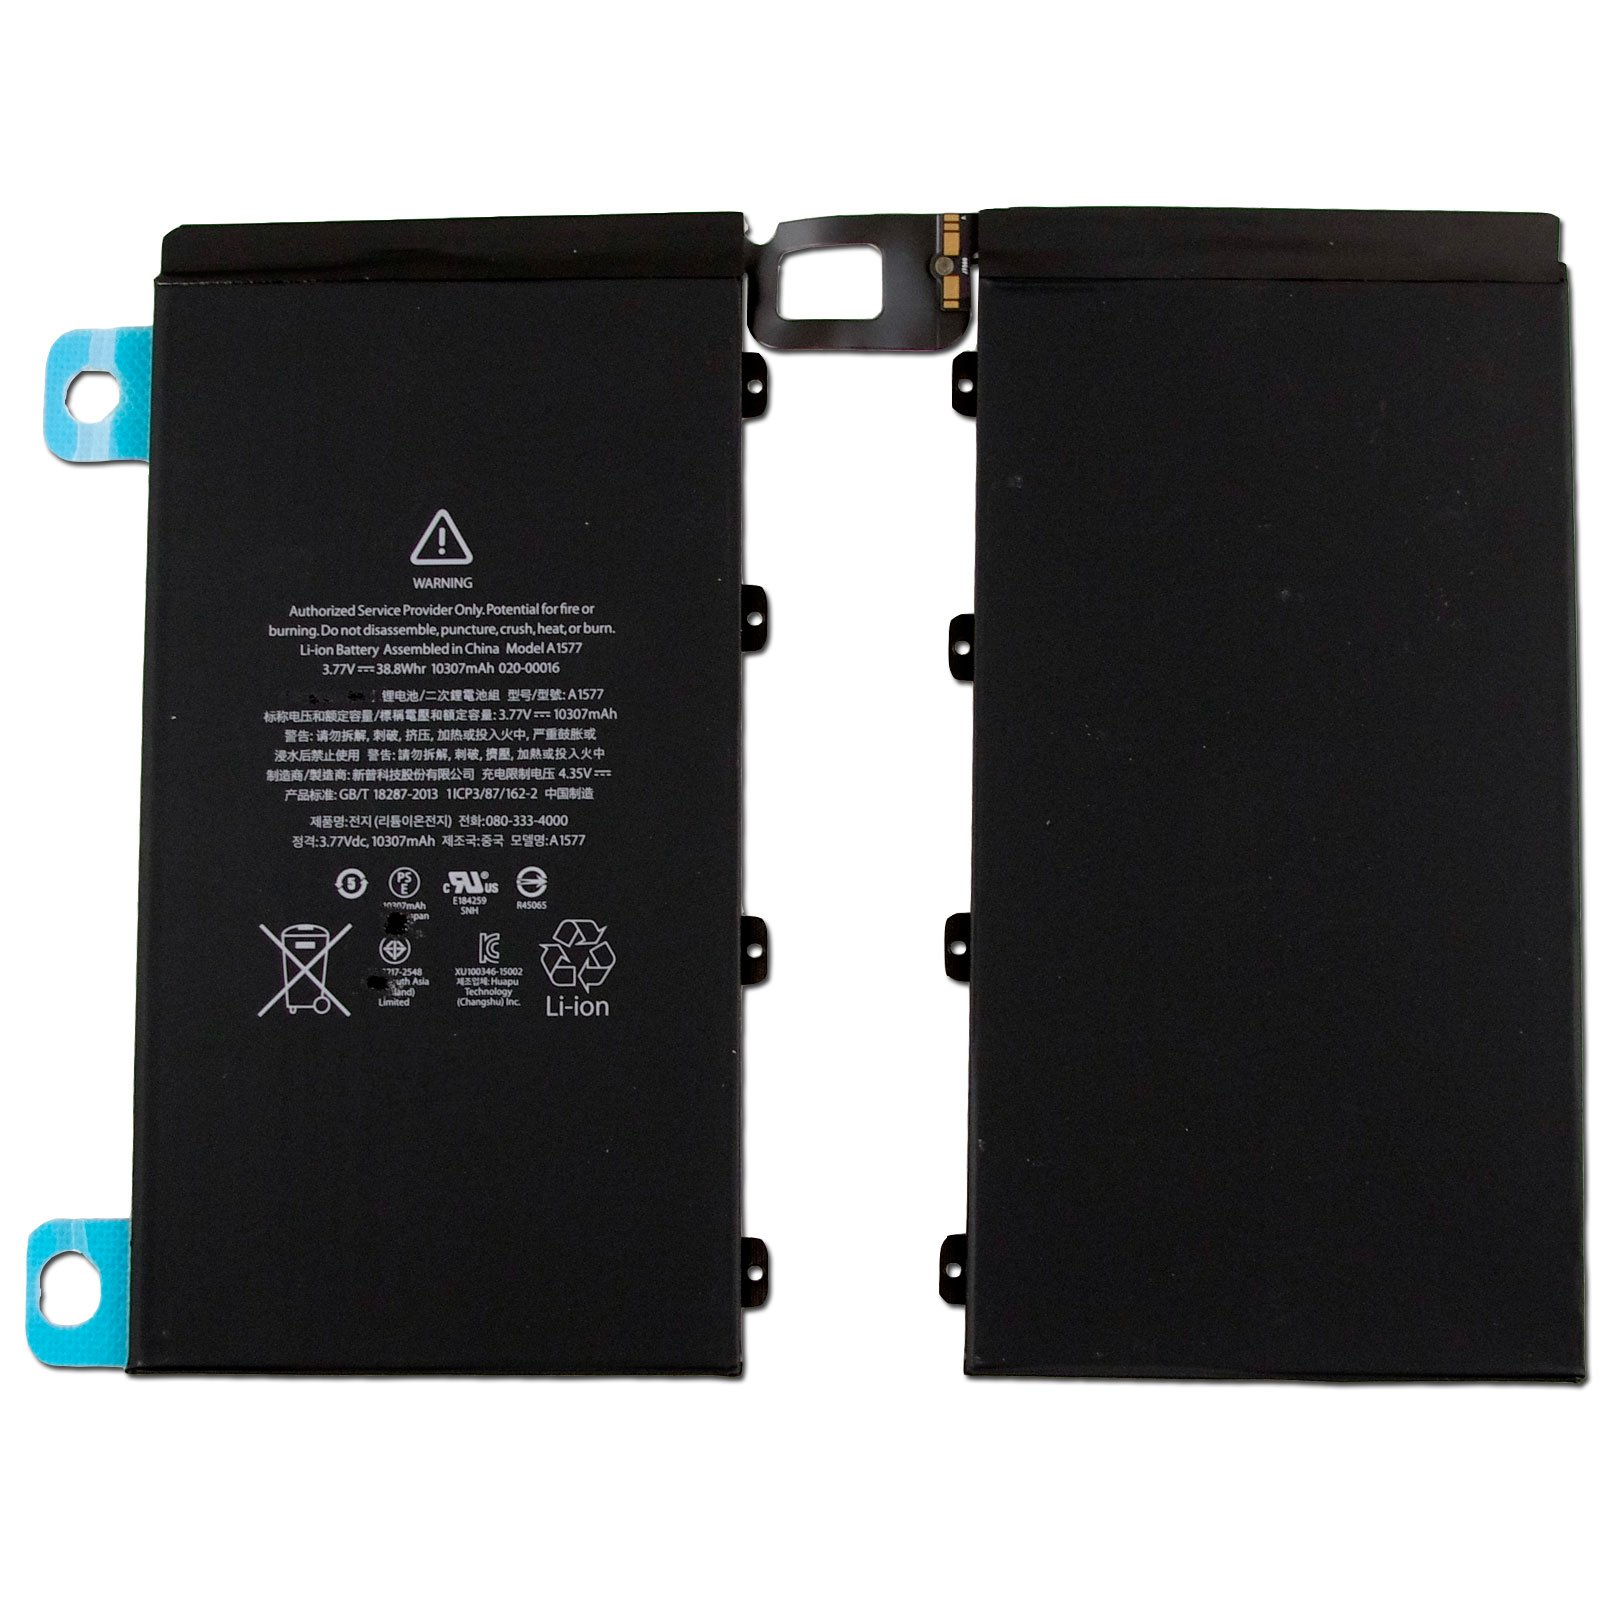 CBK 10307mAh 38.8Wh Internal Battery Replacement For Apple iPad Pro 12.9 A1577